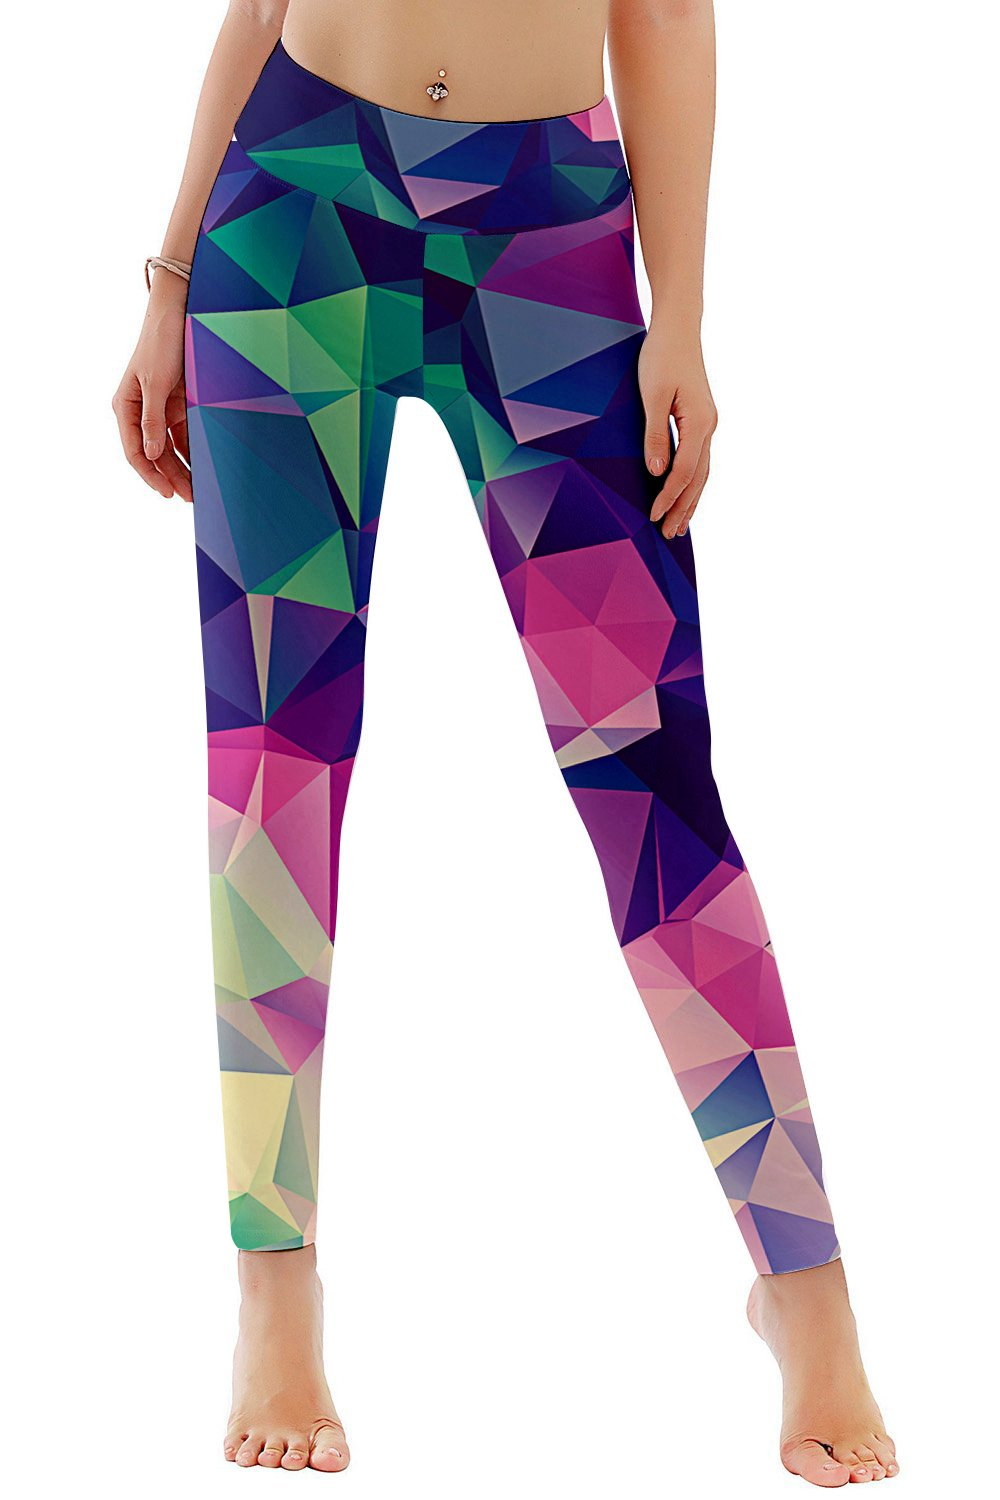 Belovecol 3D Printed Colorful Exercise Yoga Pants for Women Fashion Tights 12